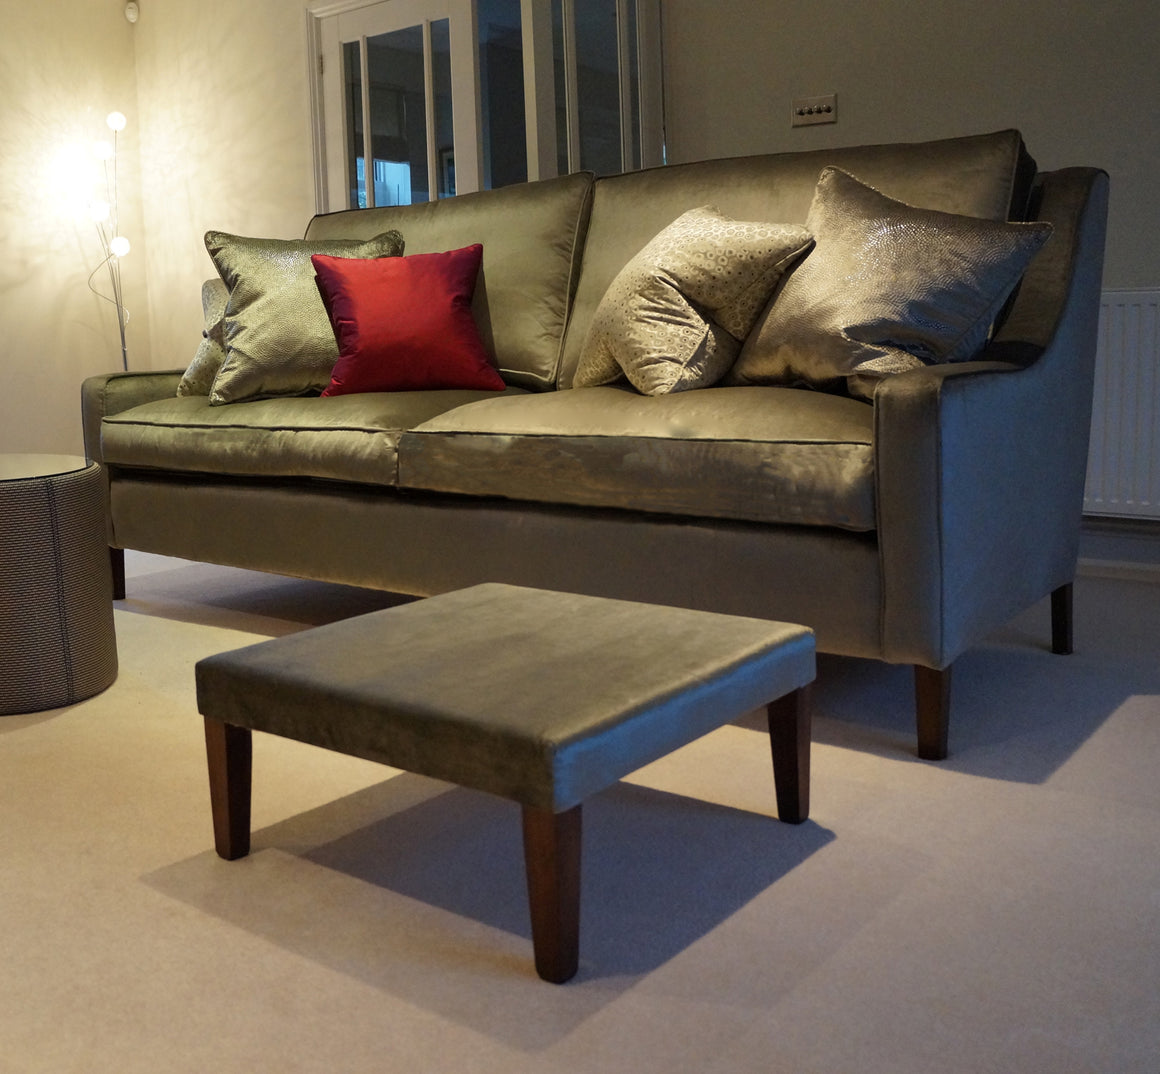 Marlow Cushion Back Sofas and Chairs